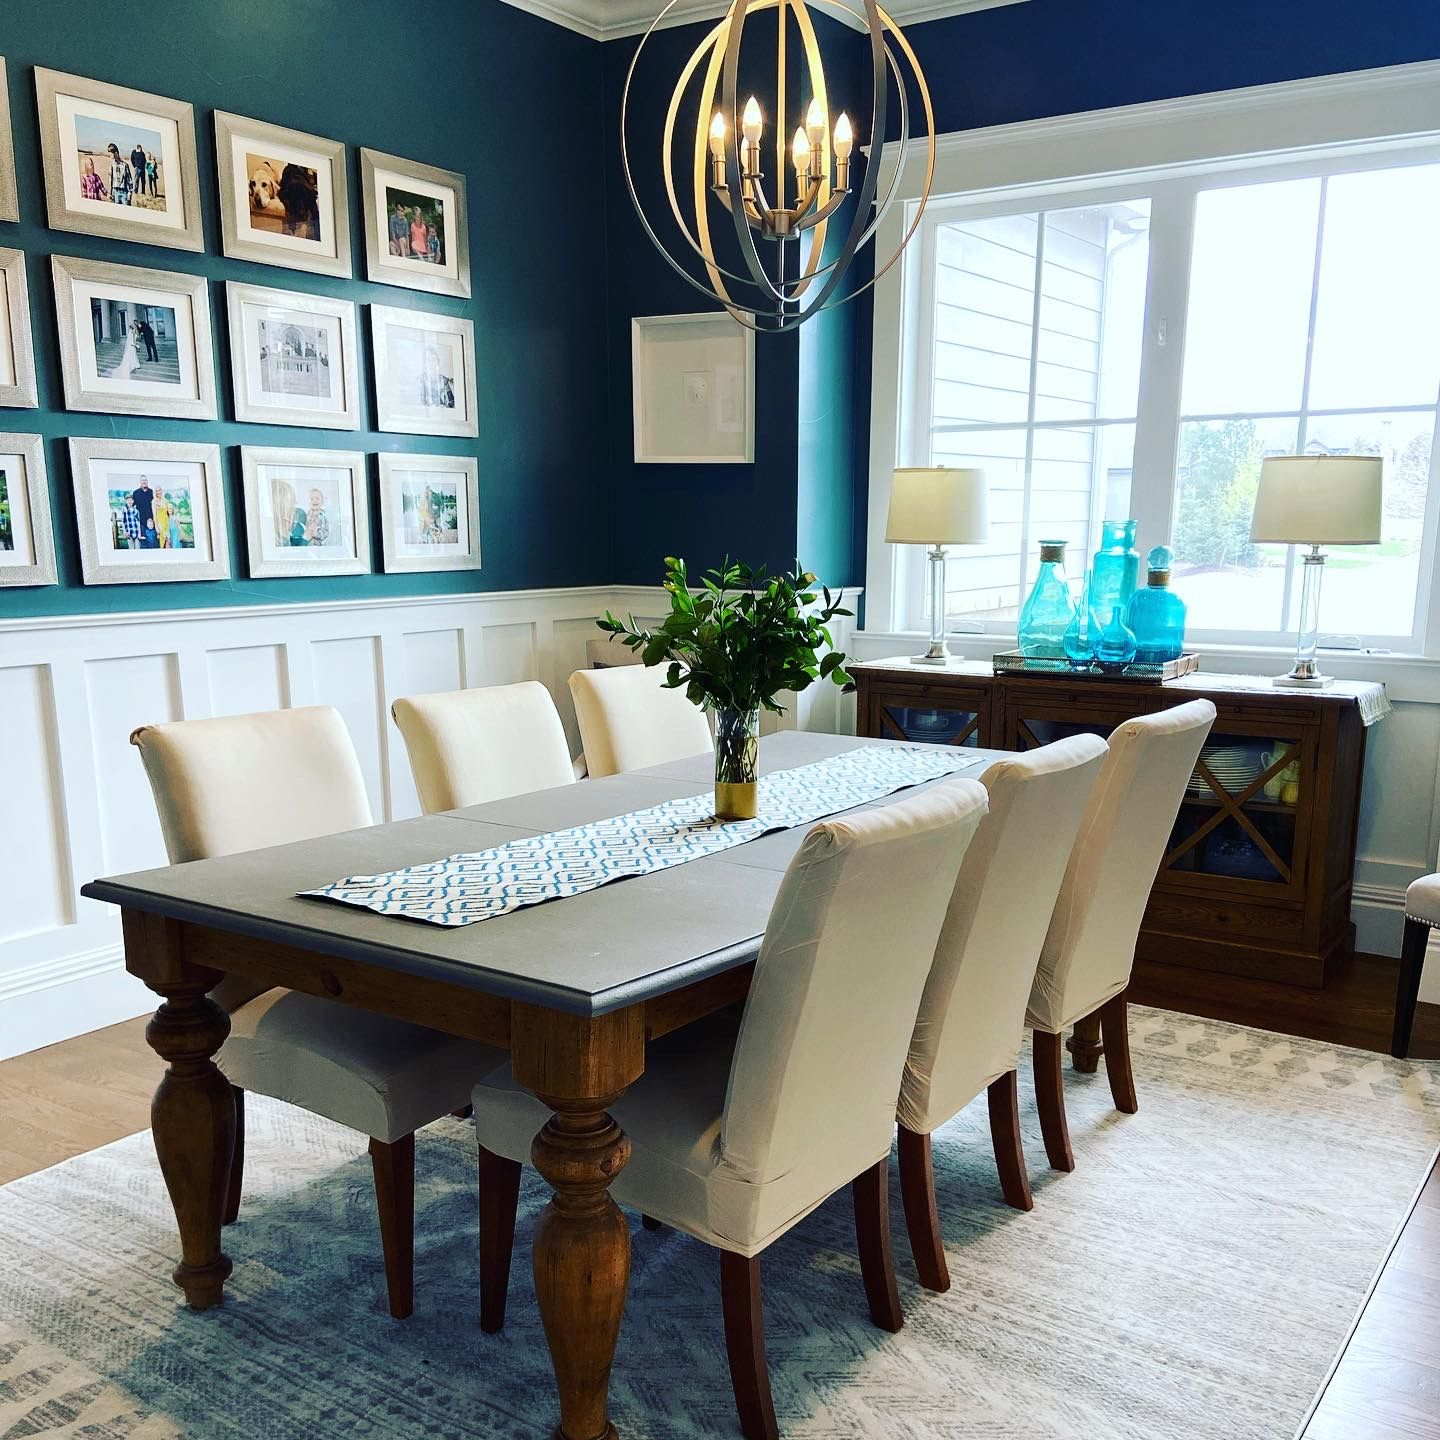 Dining room makeover with a chalk paint top table and Ballard Designs buffet. #diningroom #diningroomideas #diningroomdecorating #diningroomdecor #diningroomdesign